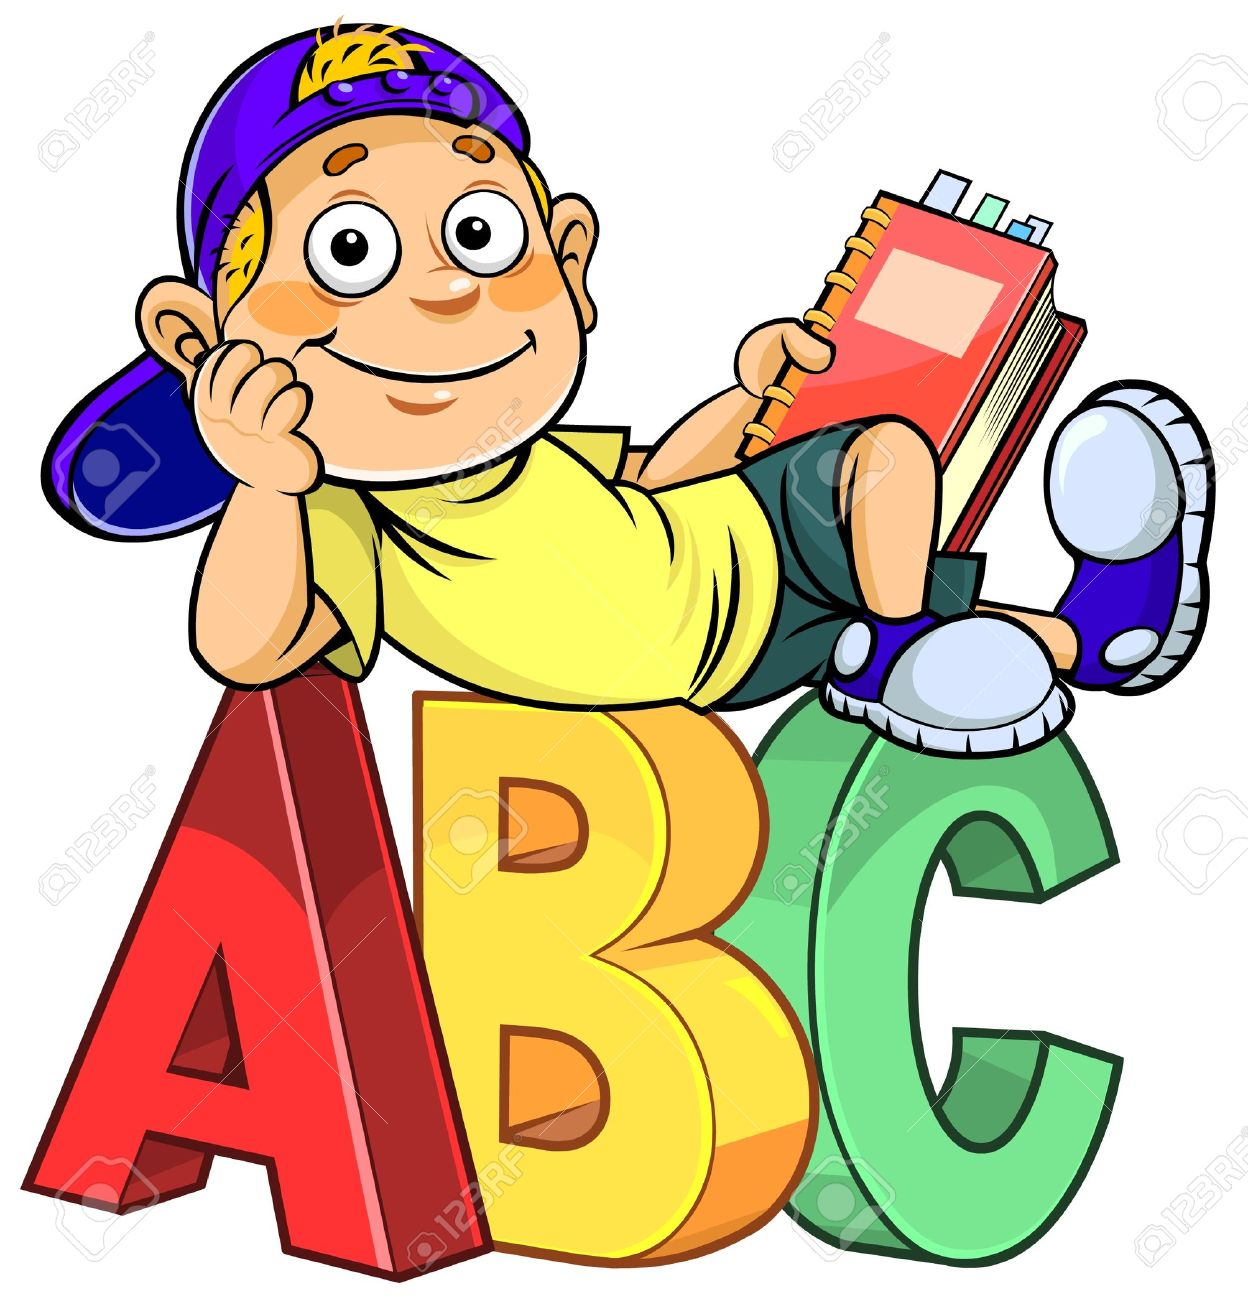 Abc order clipart png free library Abc order clipart - ClipartFest png free library